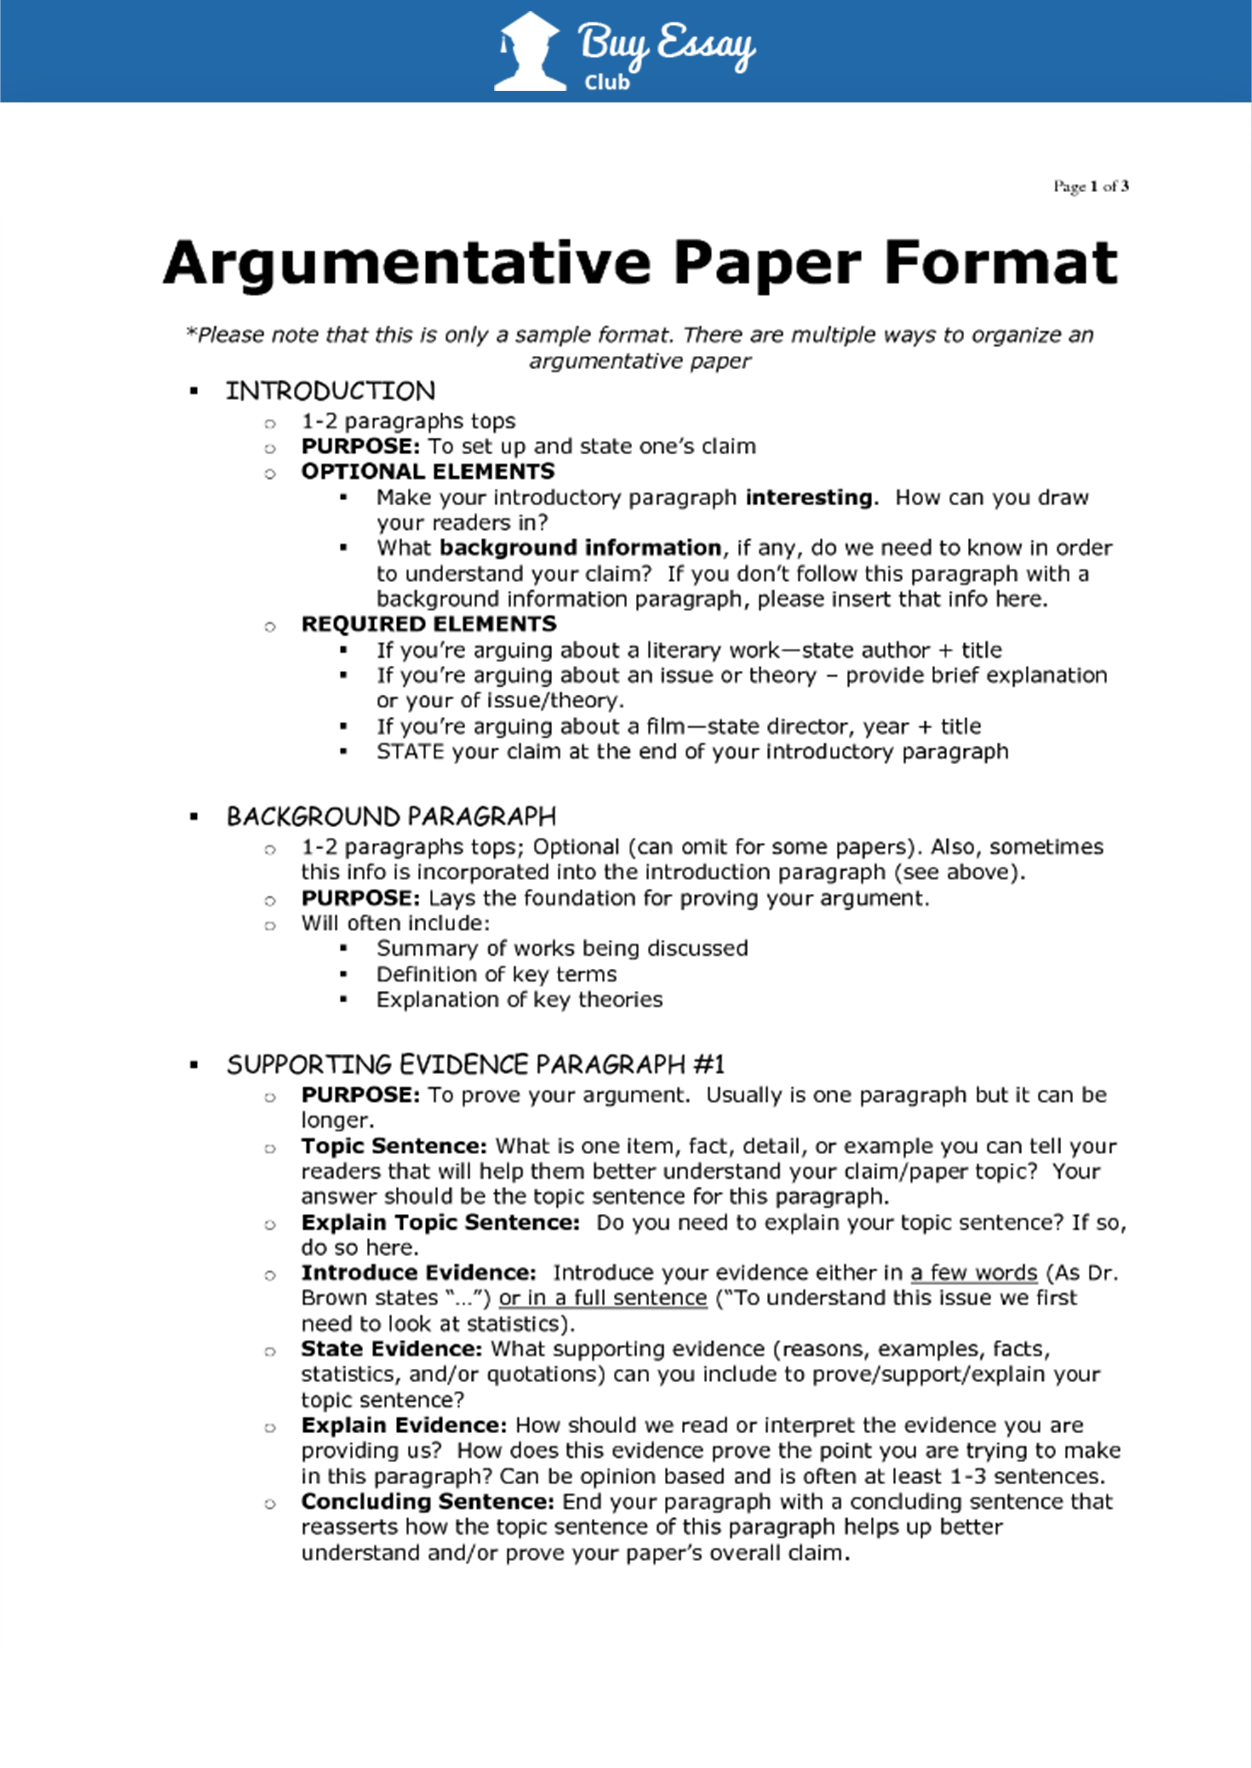 Where to purchase a completed argument essay